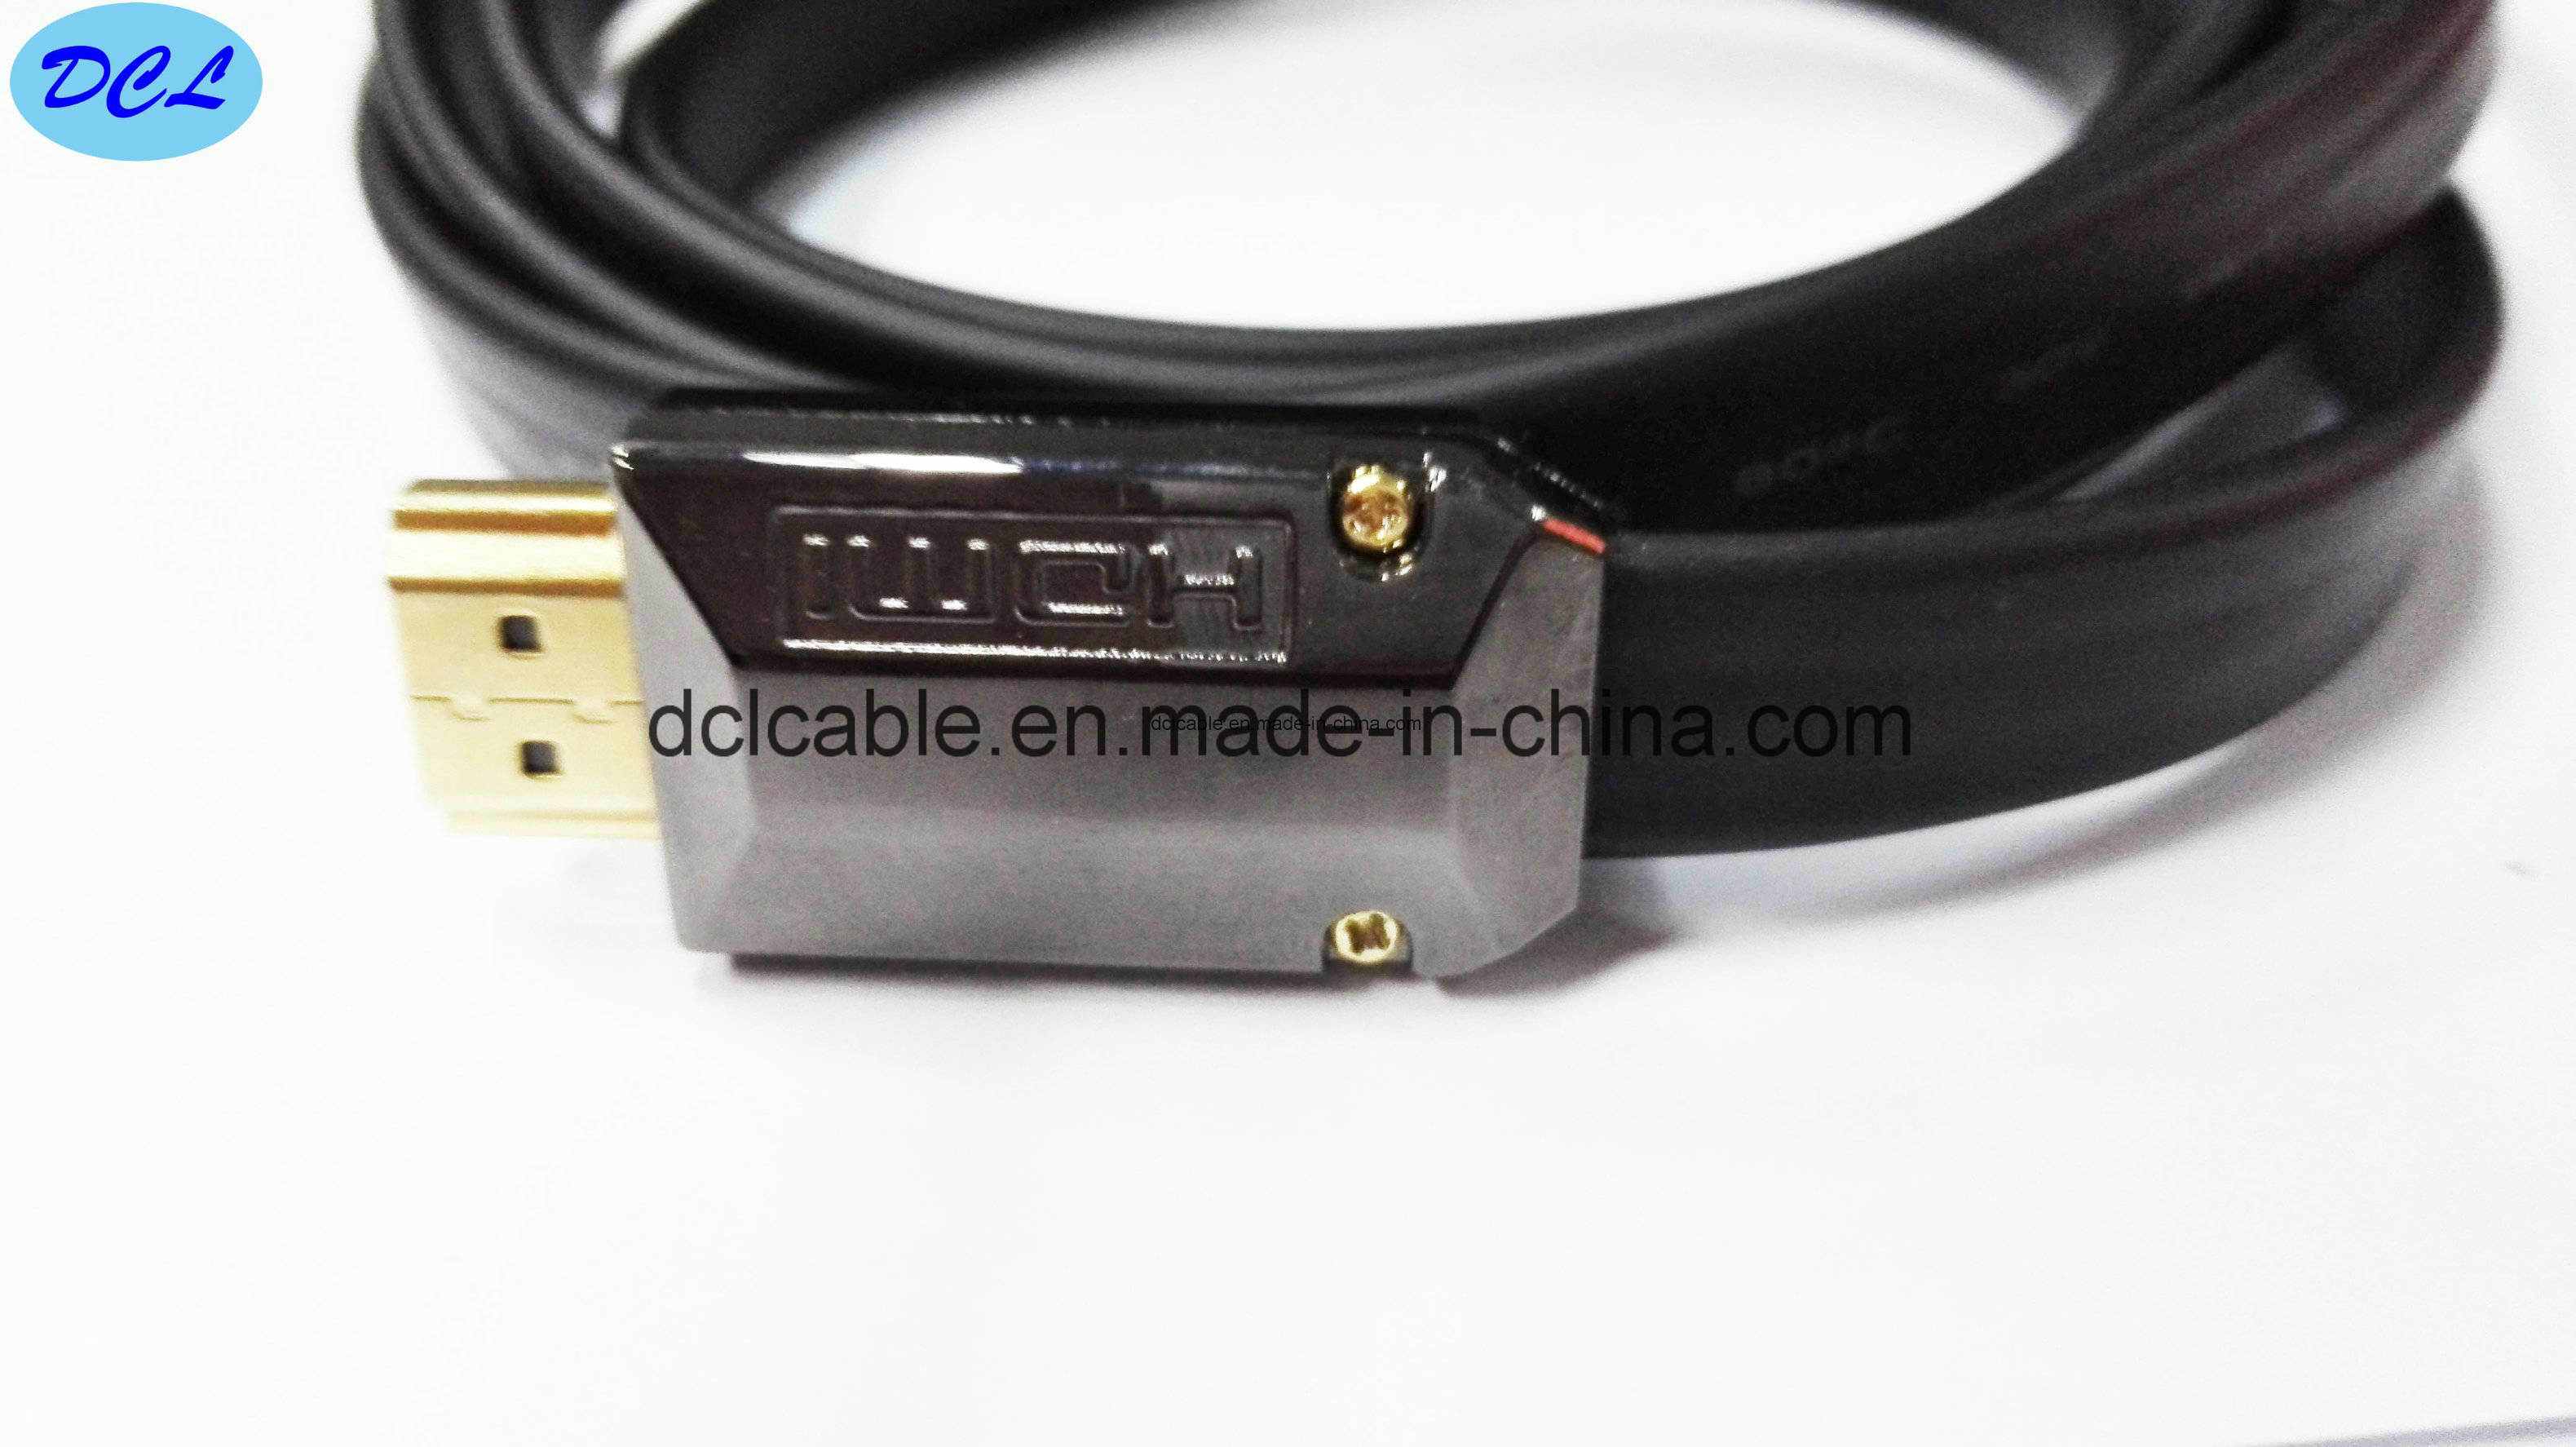 Falt HDMI Cable 1.4V Gold Plated Metal Shell